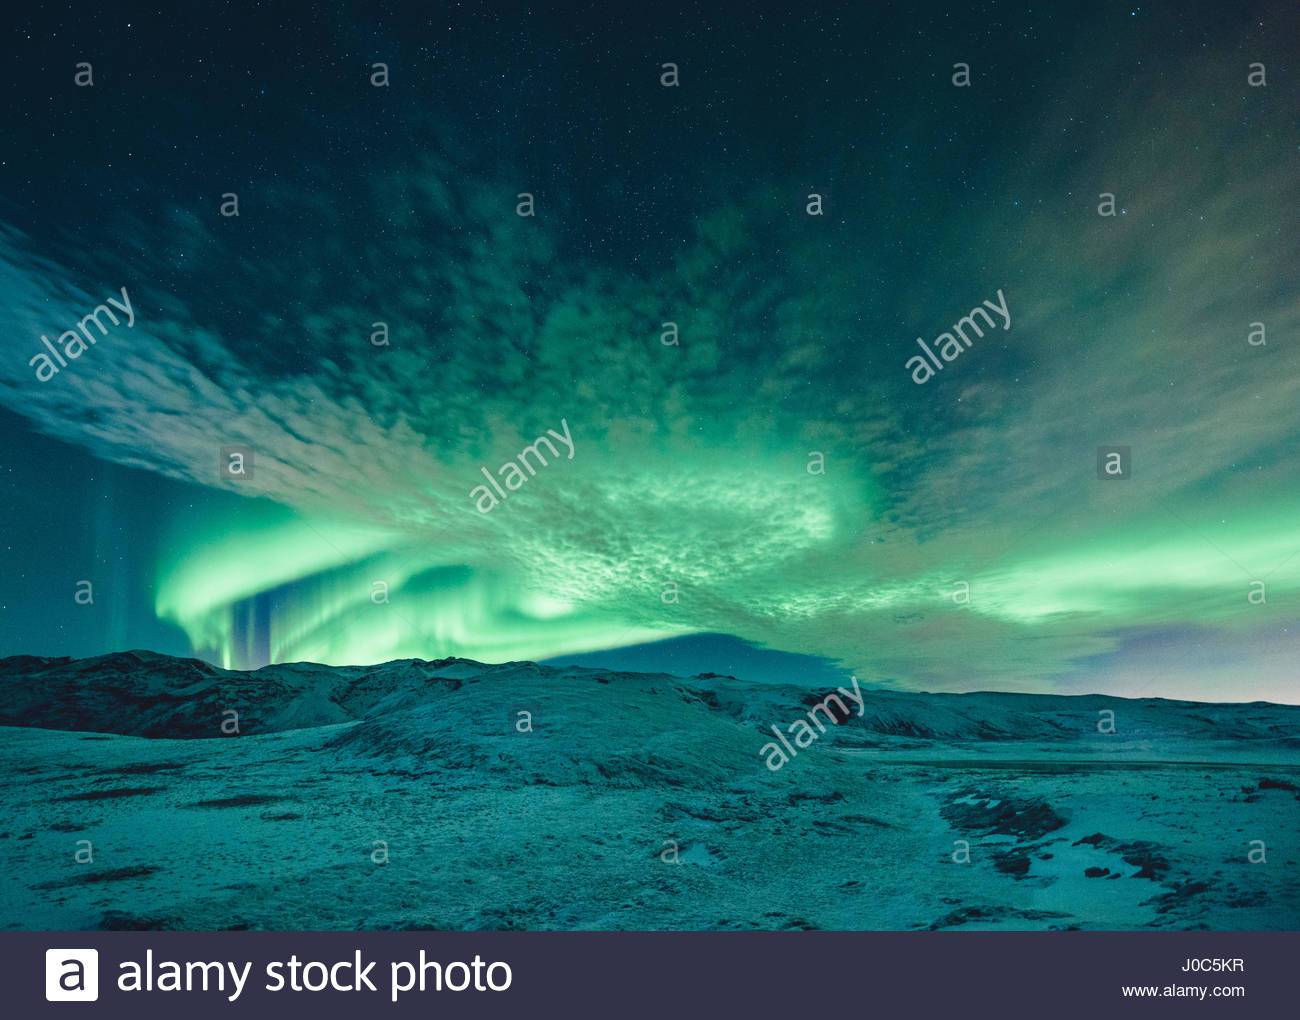 Aurora borealis swirling green over snow covered landscape, Lake Kleifarvatn, Iceland - Stock Image